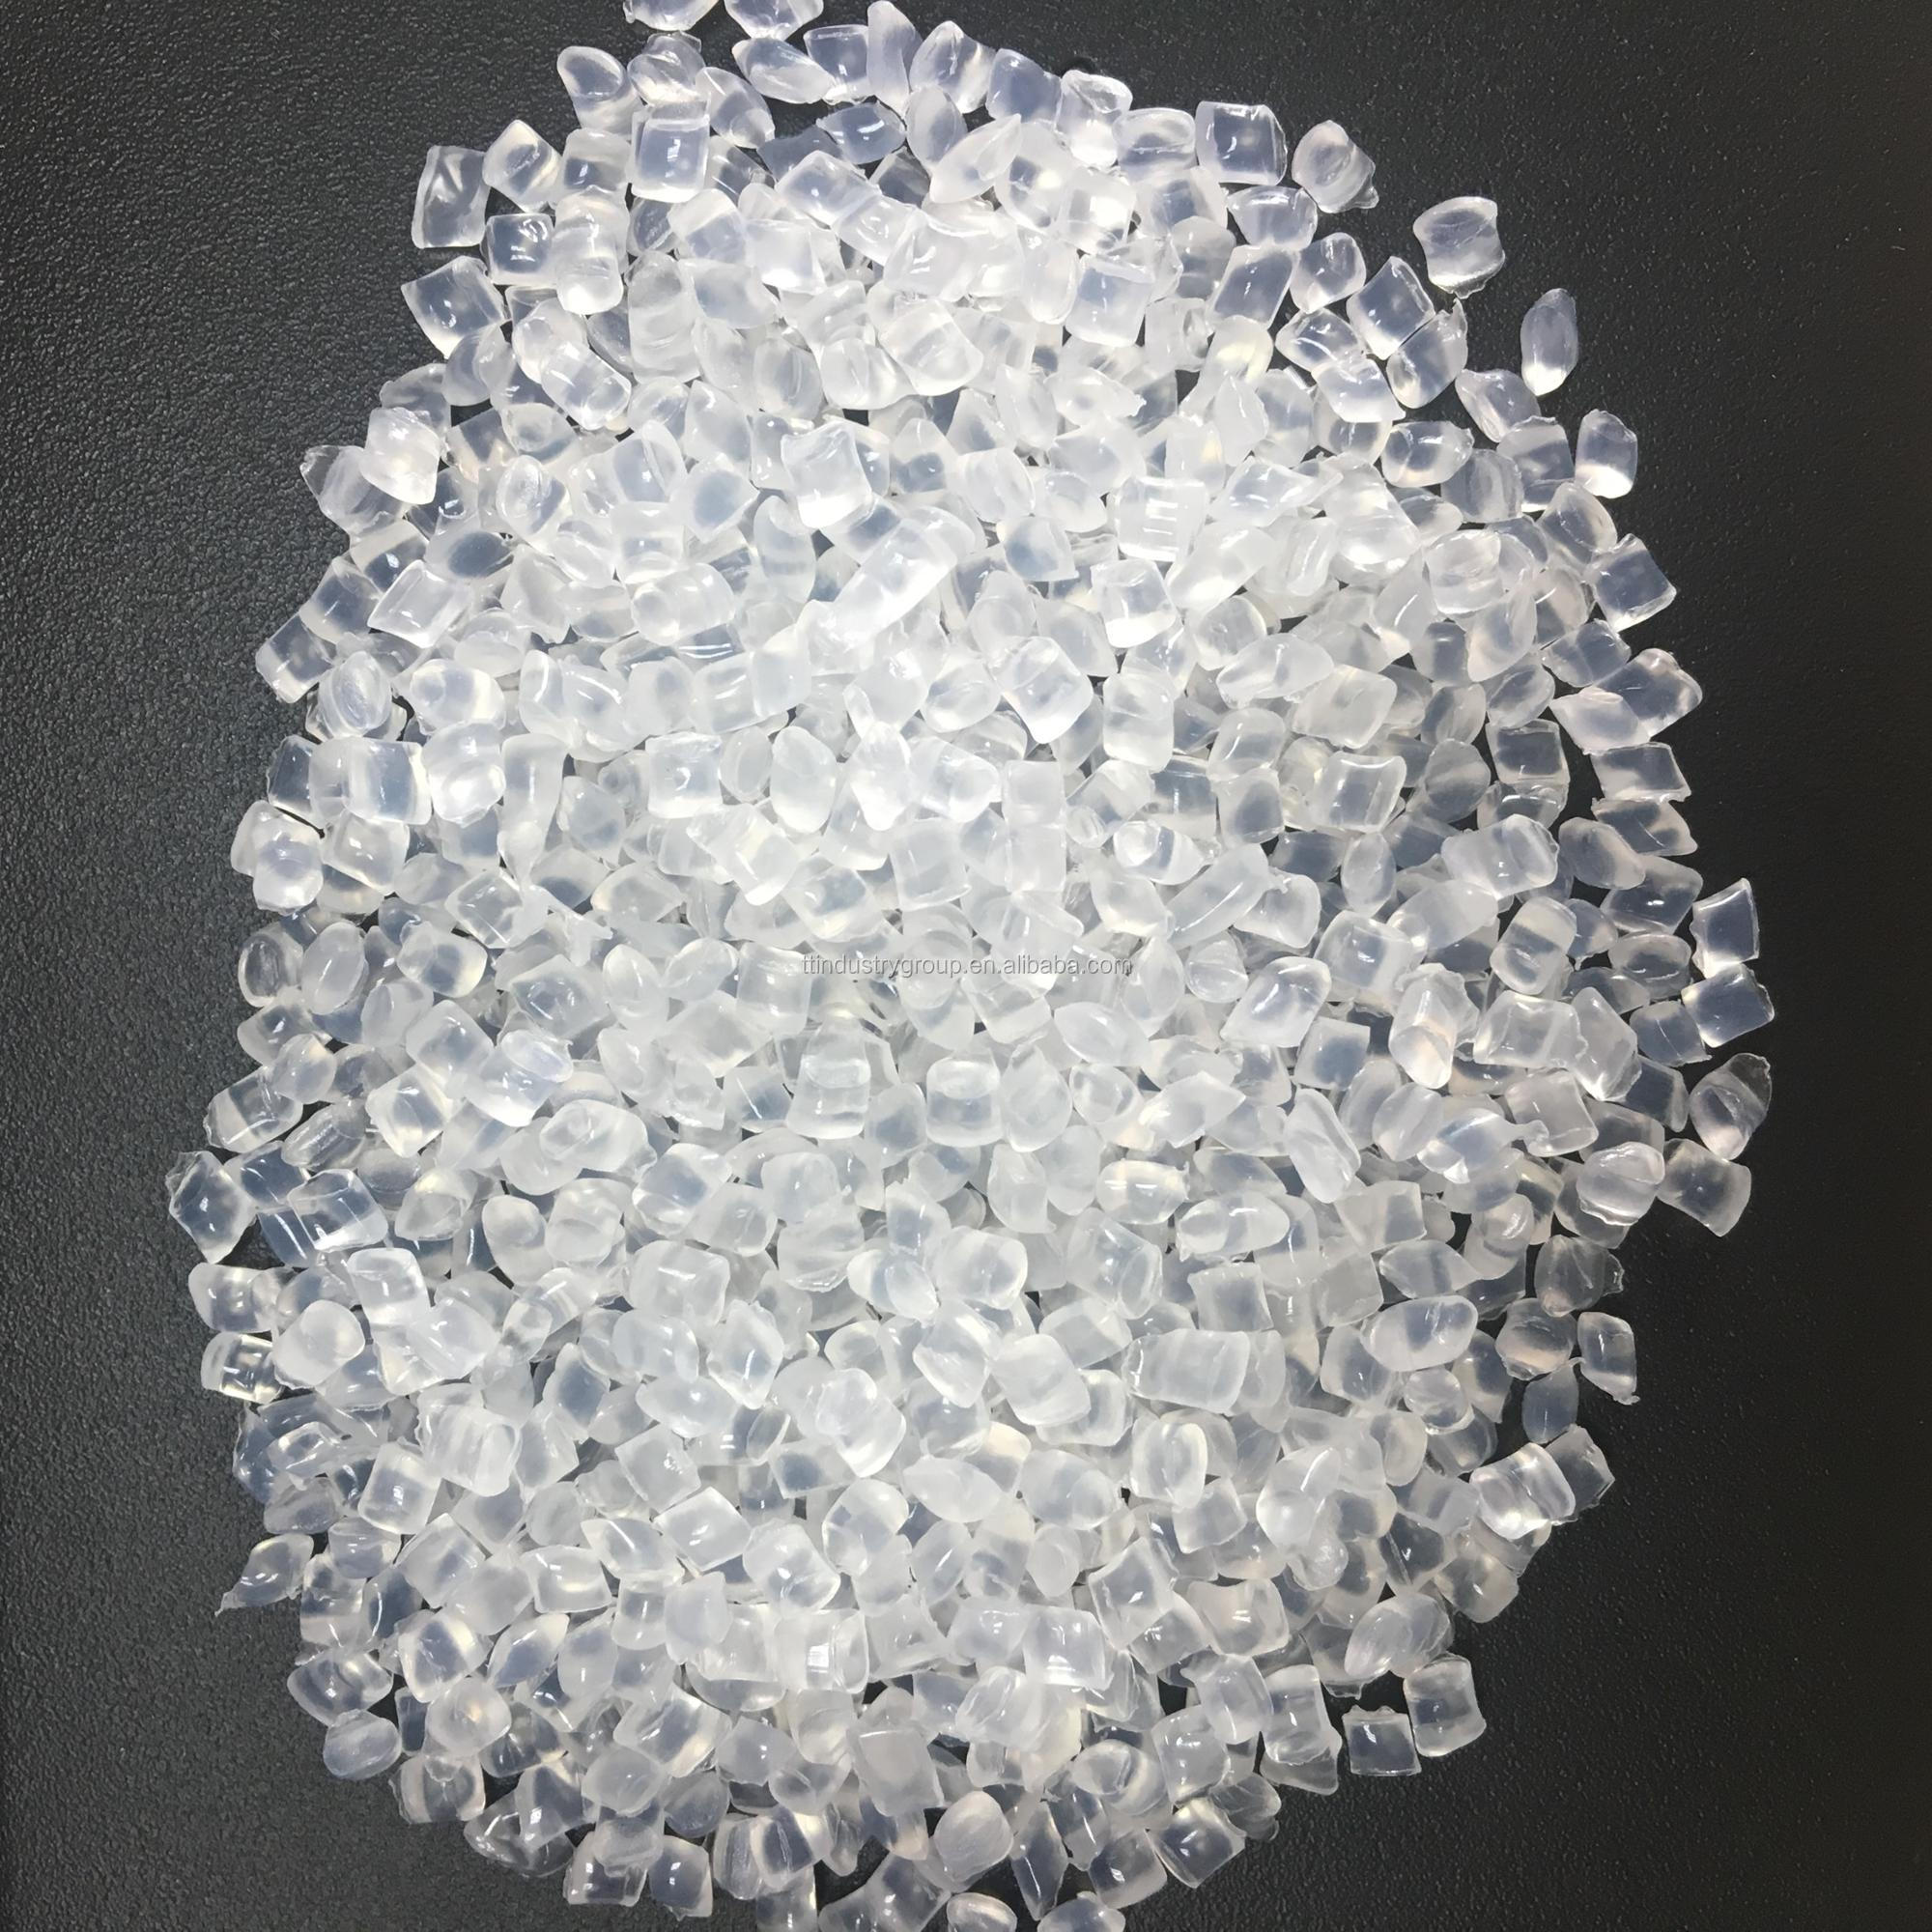 2020 HOT SELLING ! Special engineering plastics PA612 granules/pellets /Polyamide 612 resin/pallets for food grade appliance